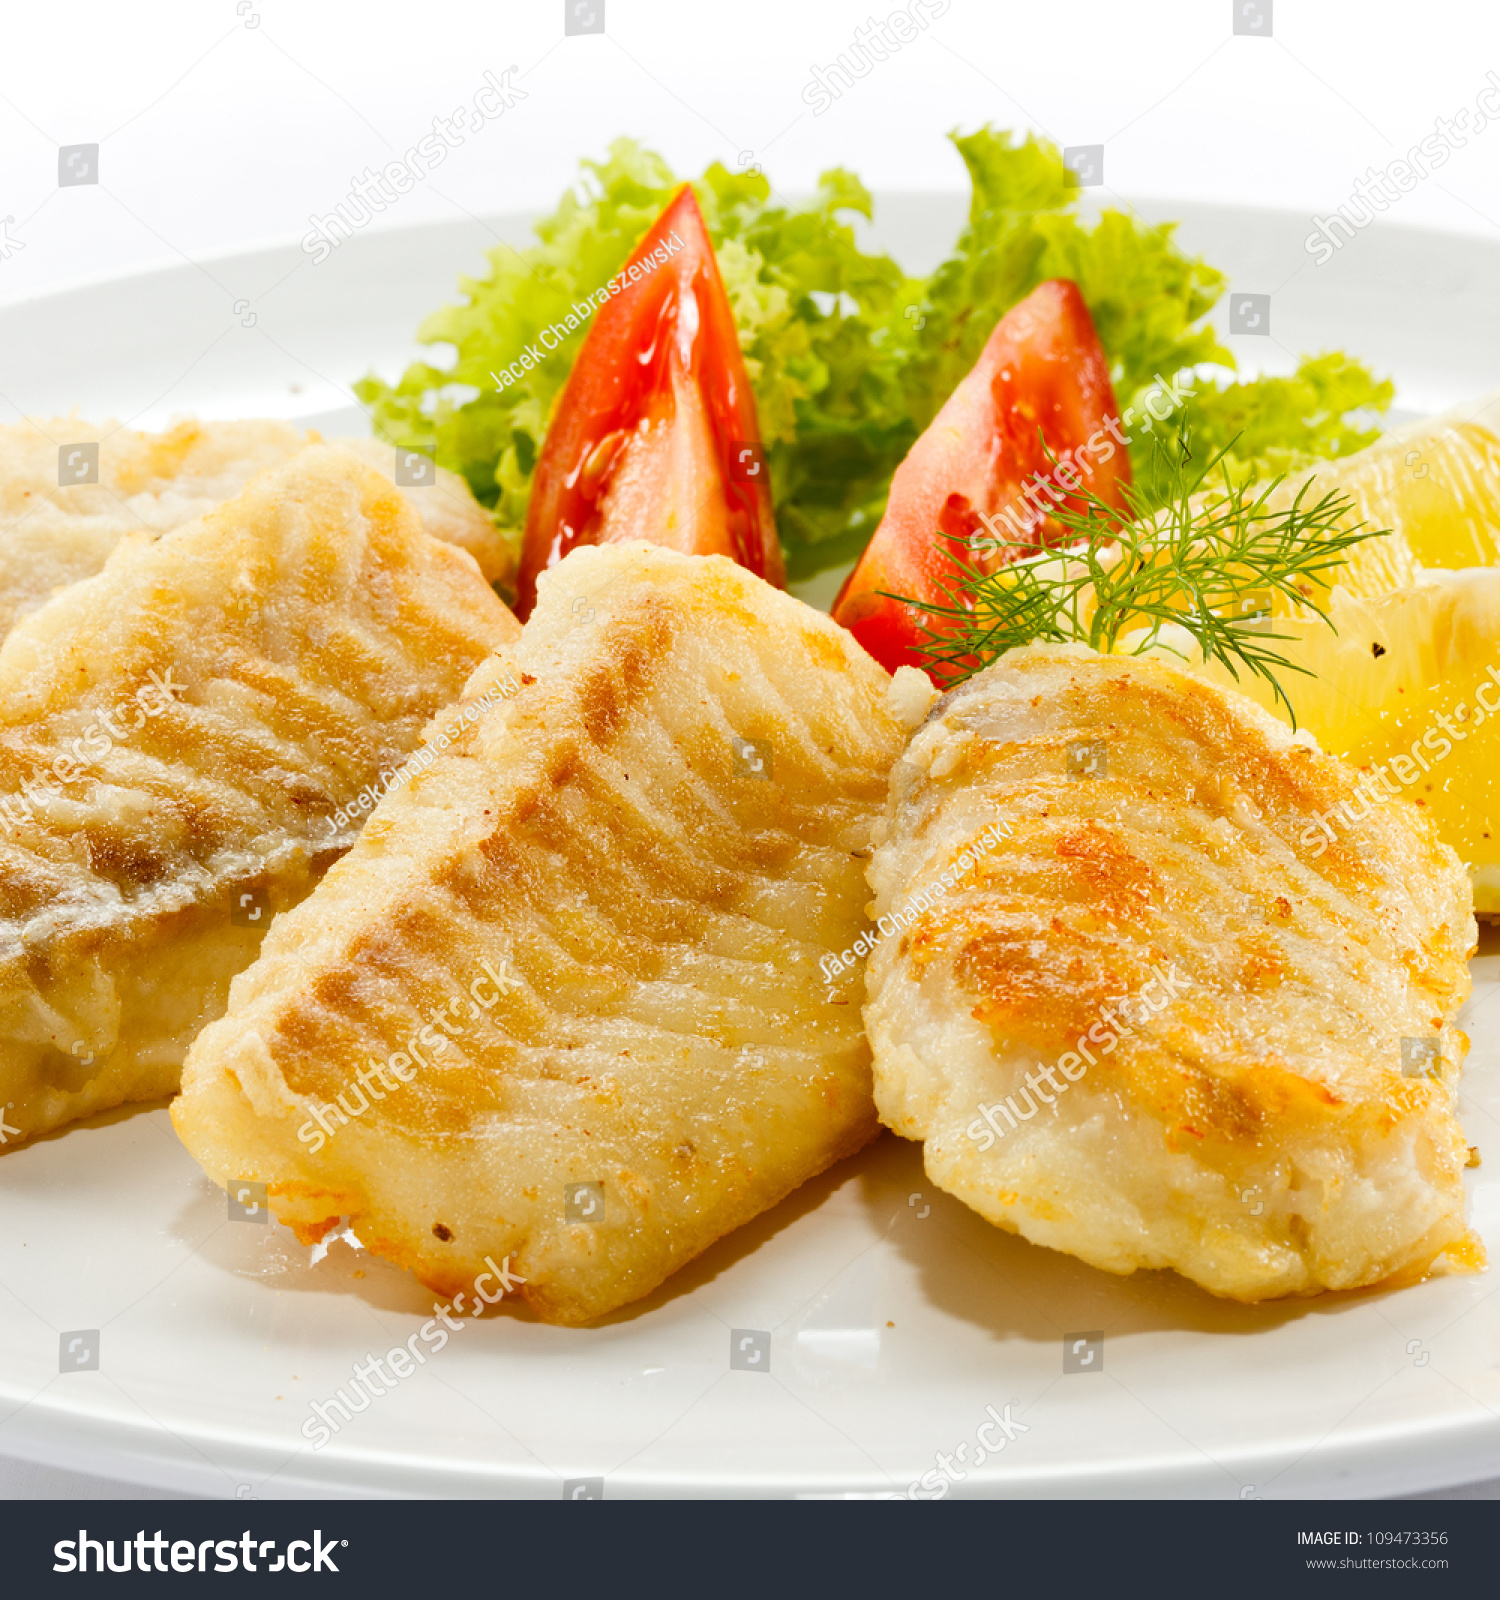 Fish Dish Fried Fish Fillet Vegetables Stock Photo